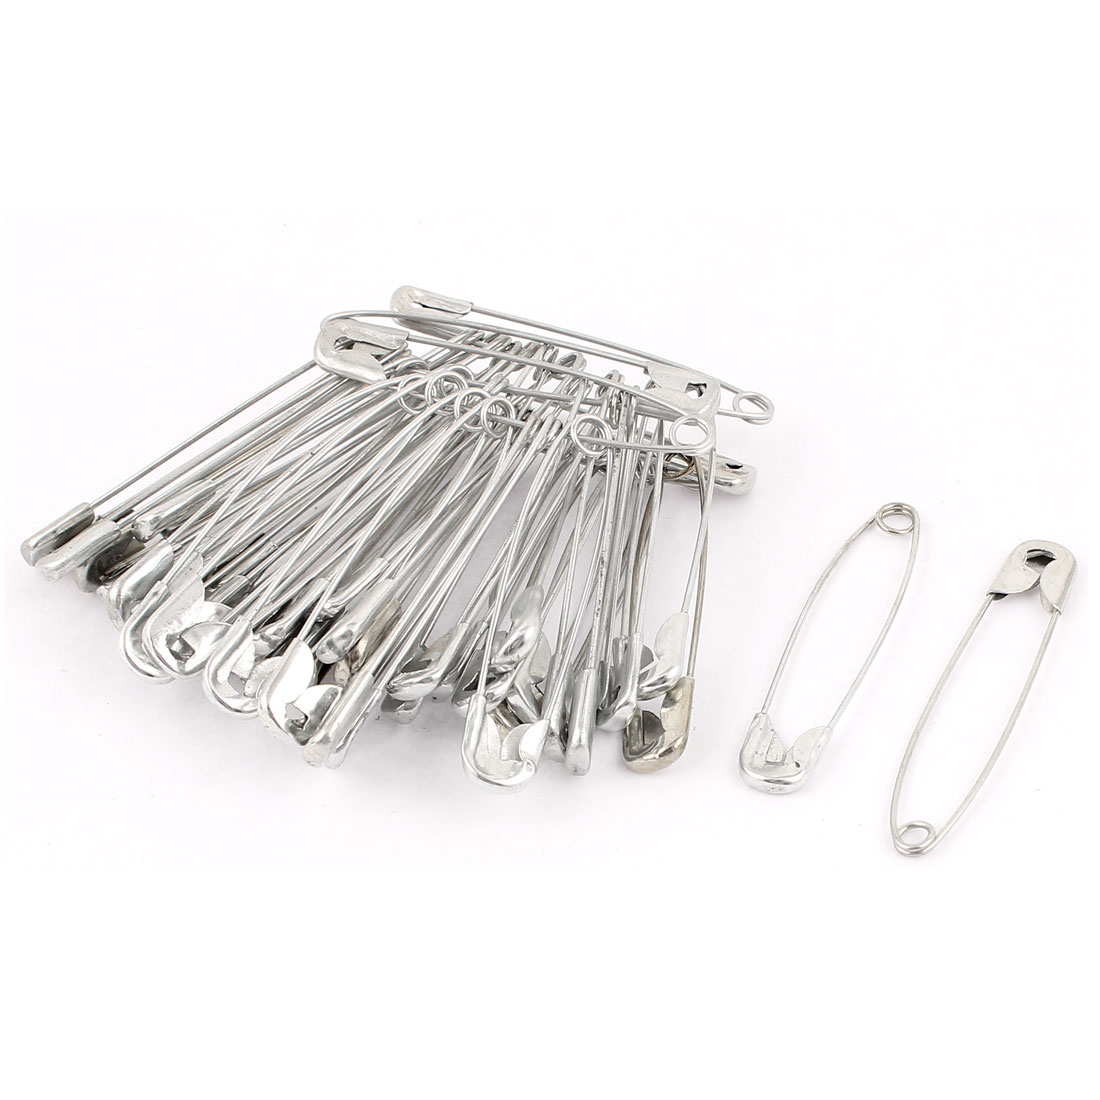 Housewares Metal Sewing Knitted Skirt Craft Brooch Safety Pin 53x10mm 50 Pcs